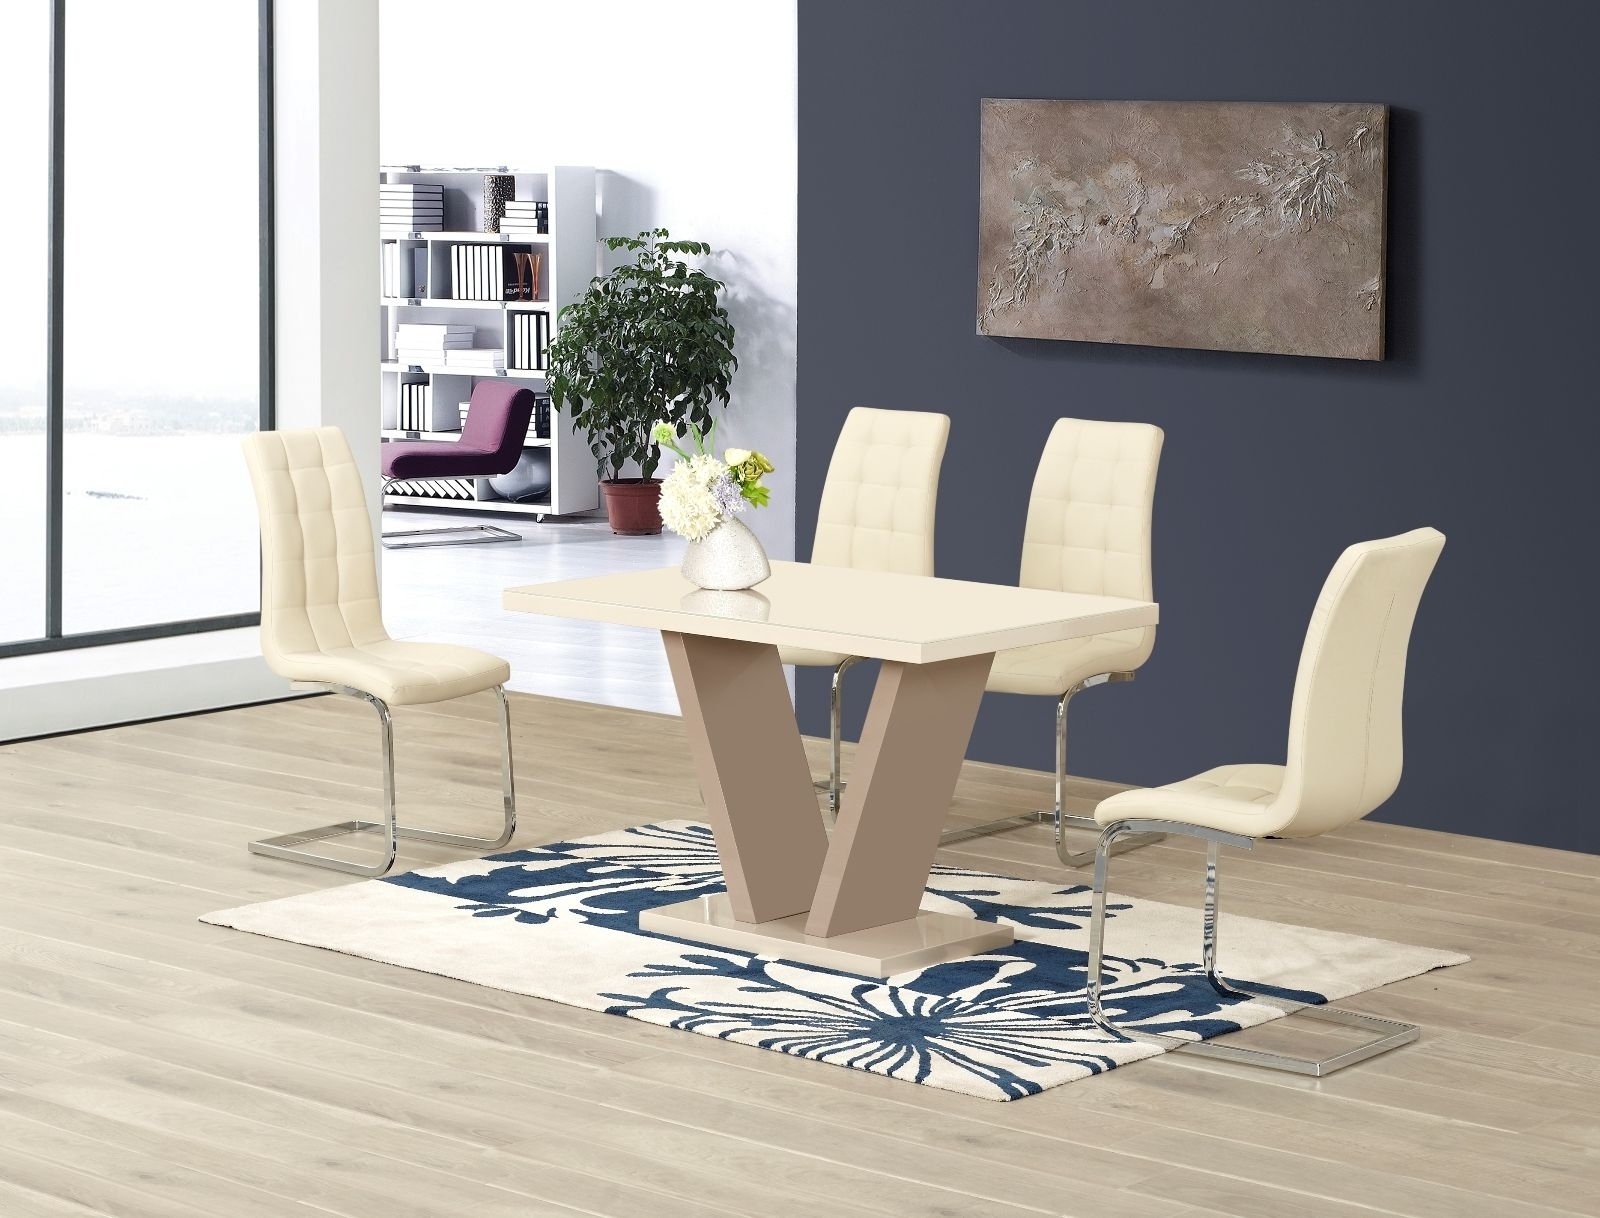 Cream High Gloss Dining Tables Regarding Most Up To Date Ga Vico Cream Gloss Designer 120 Cm Dining Set & 4 Araceli Or Sicily (Gallery 4 of 25)